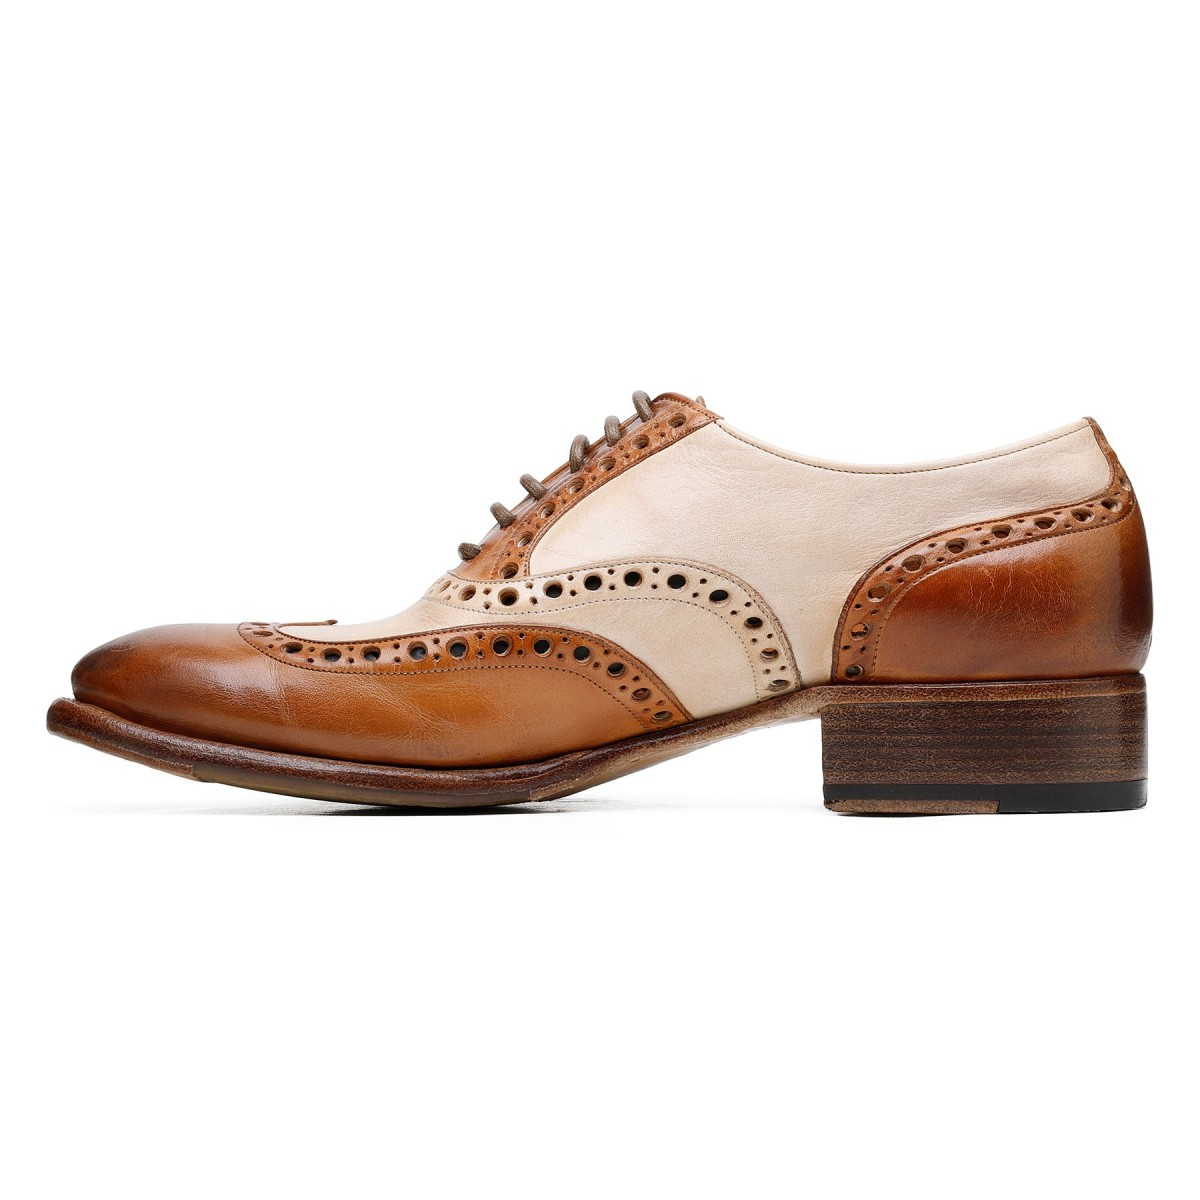 Two-tone leather Oxford shoes